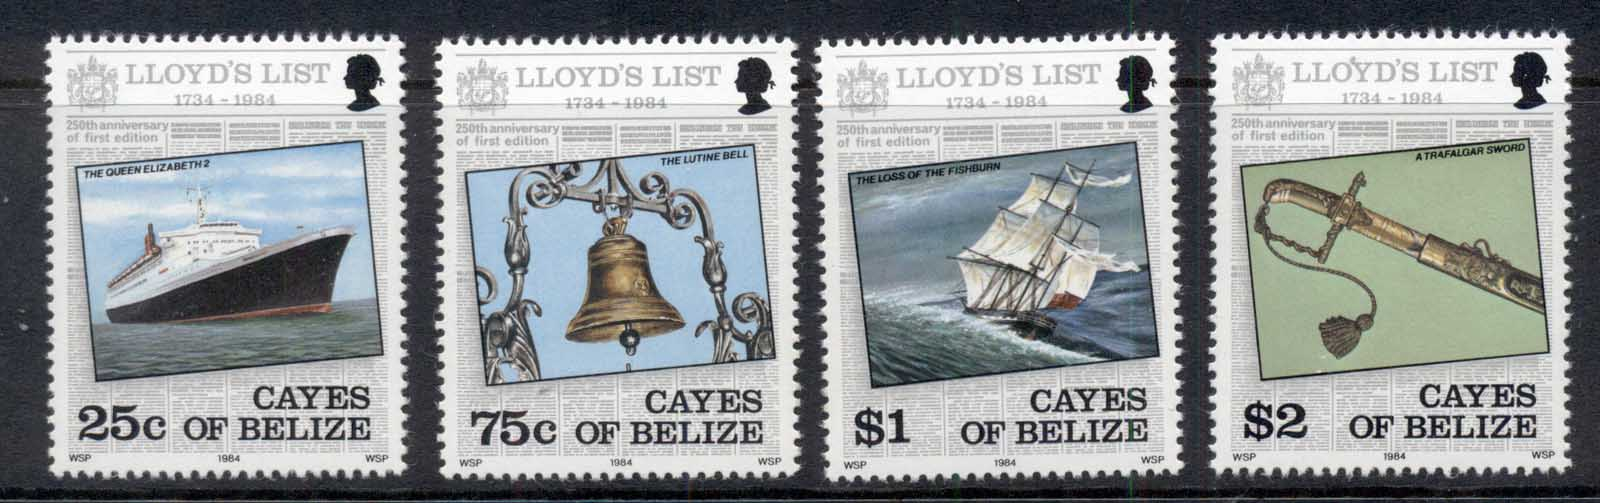 Cayes of Belize 1984 Lloyd's List Ships MUH